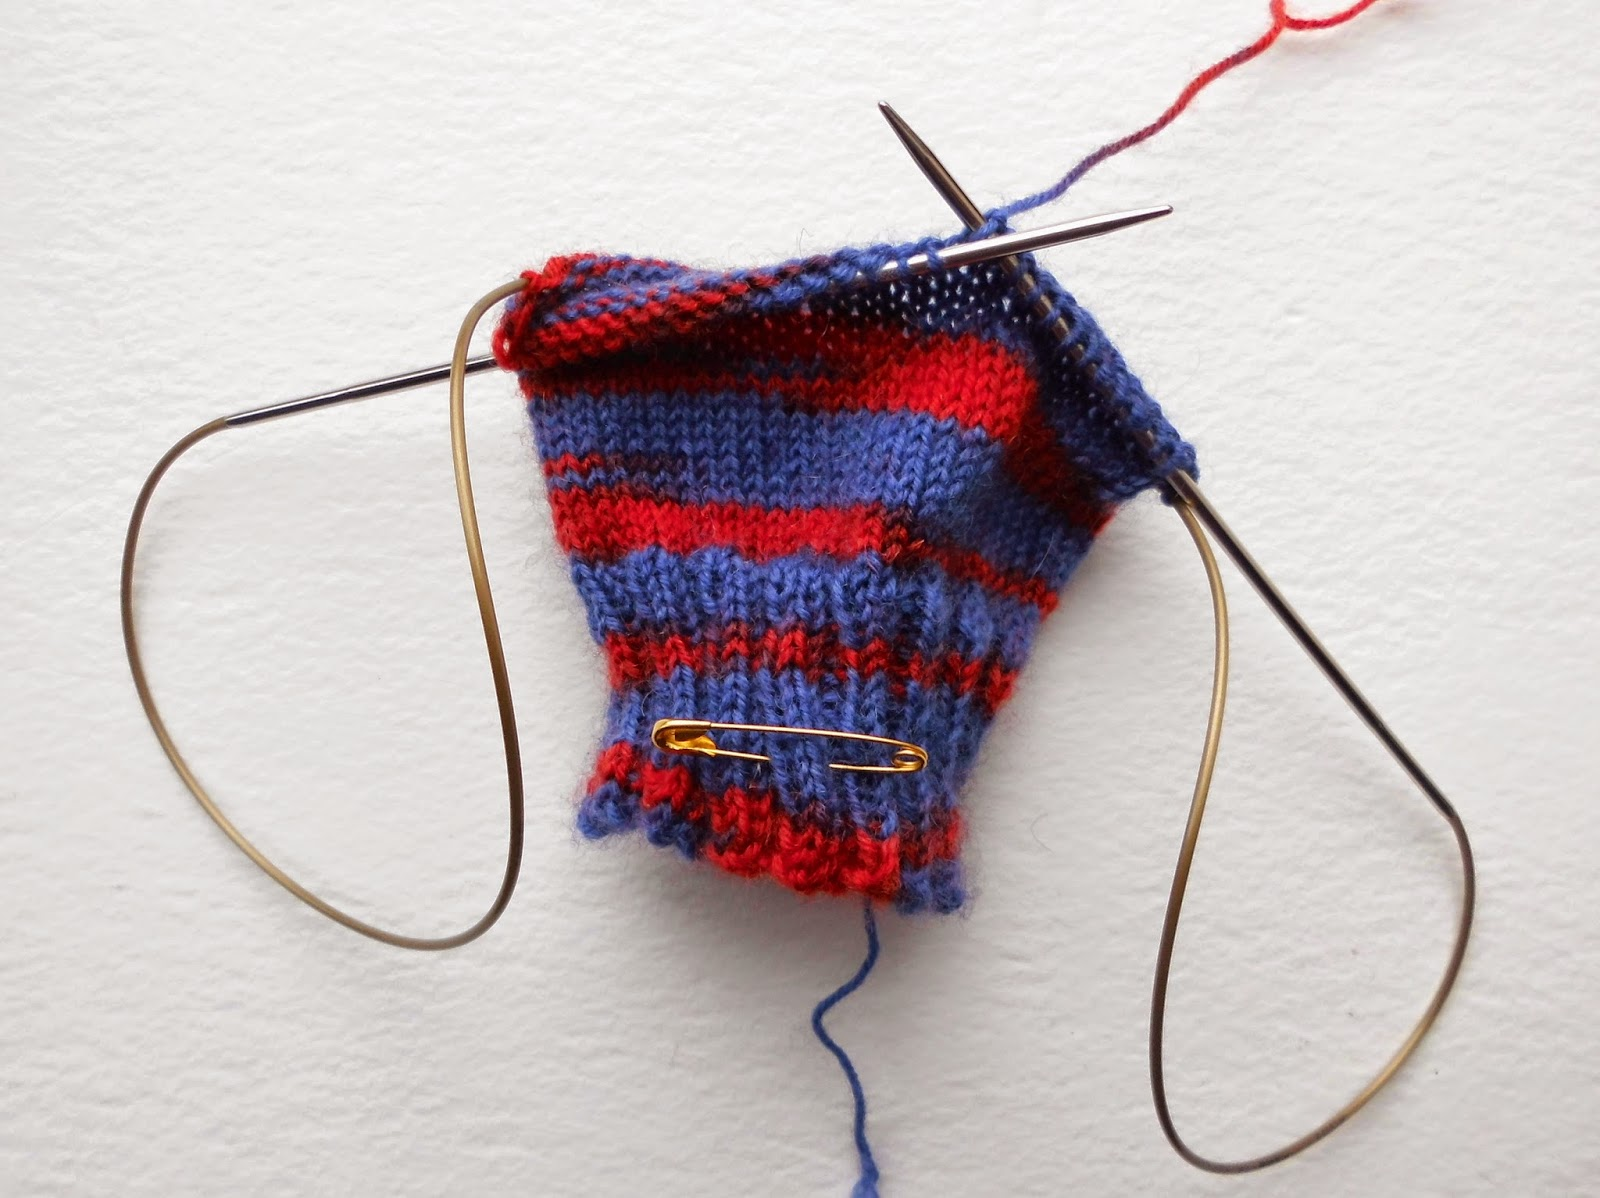 Example of knitting using long circular needle for magic loop